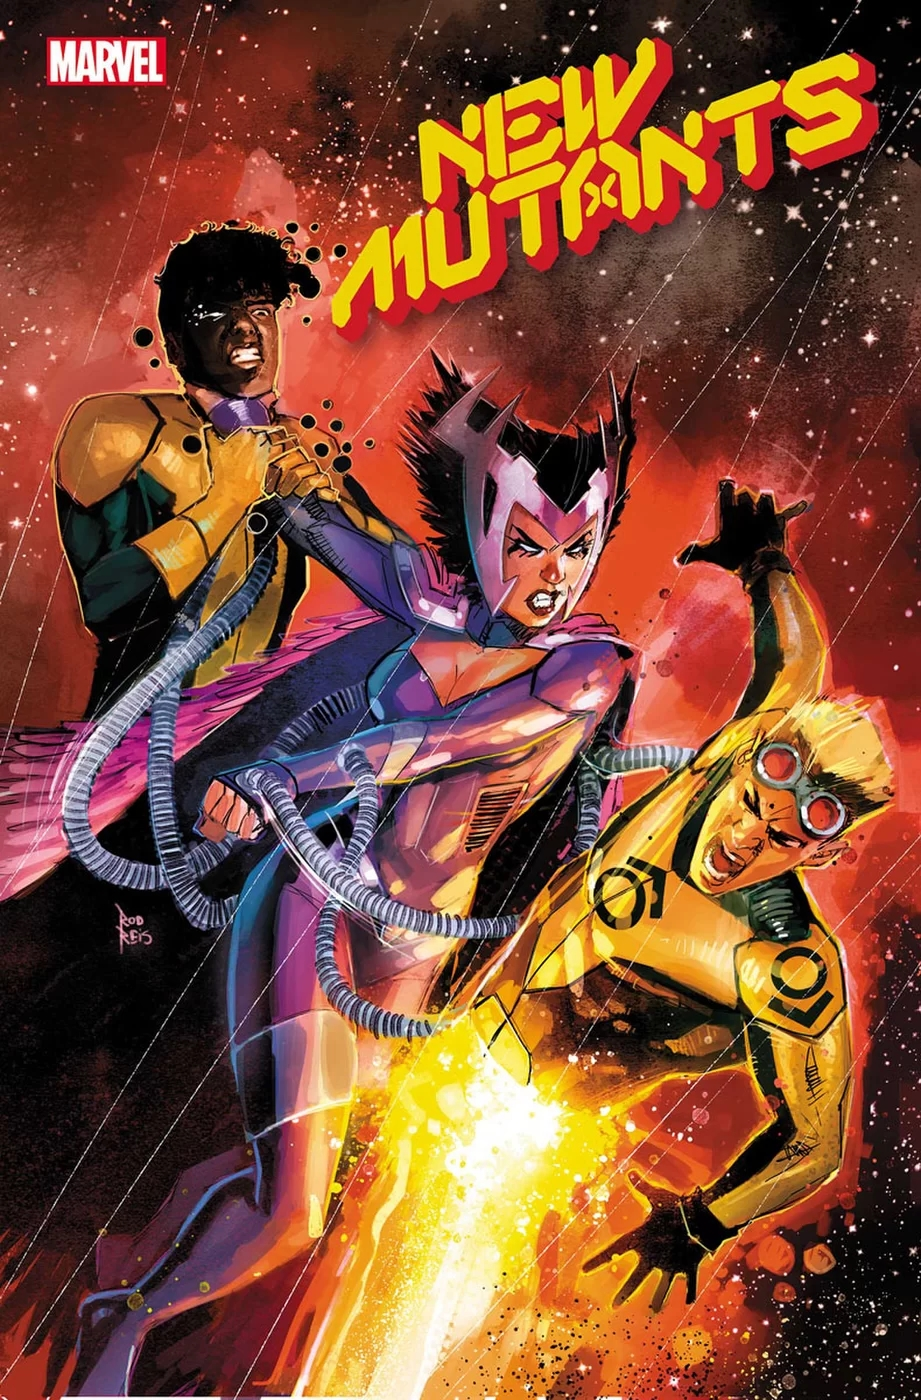 Marvel Changes Solicits For X-Men #4 and New Mutants #4